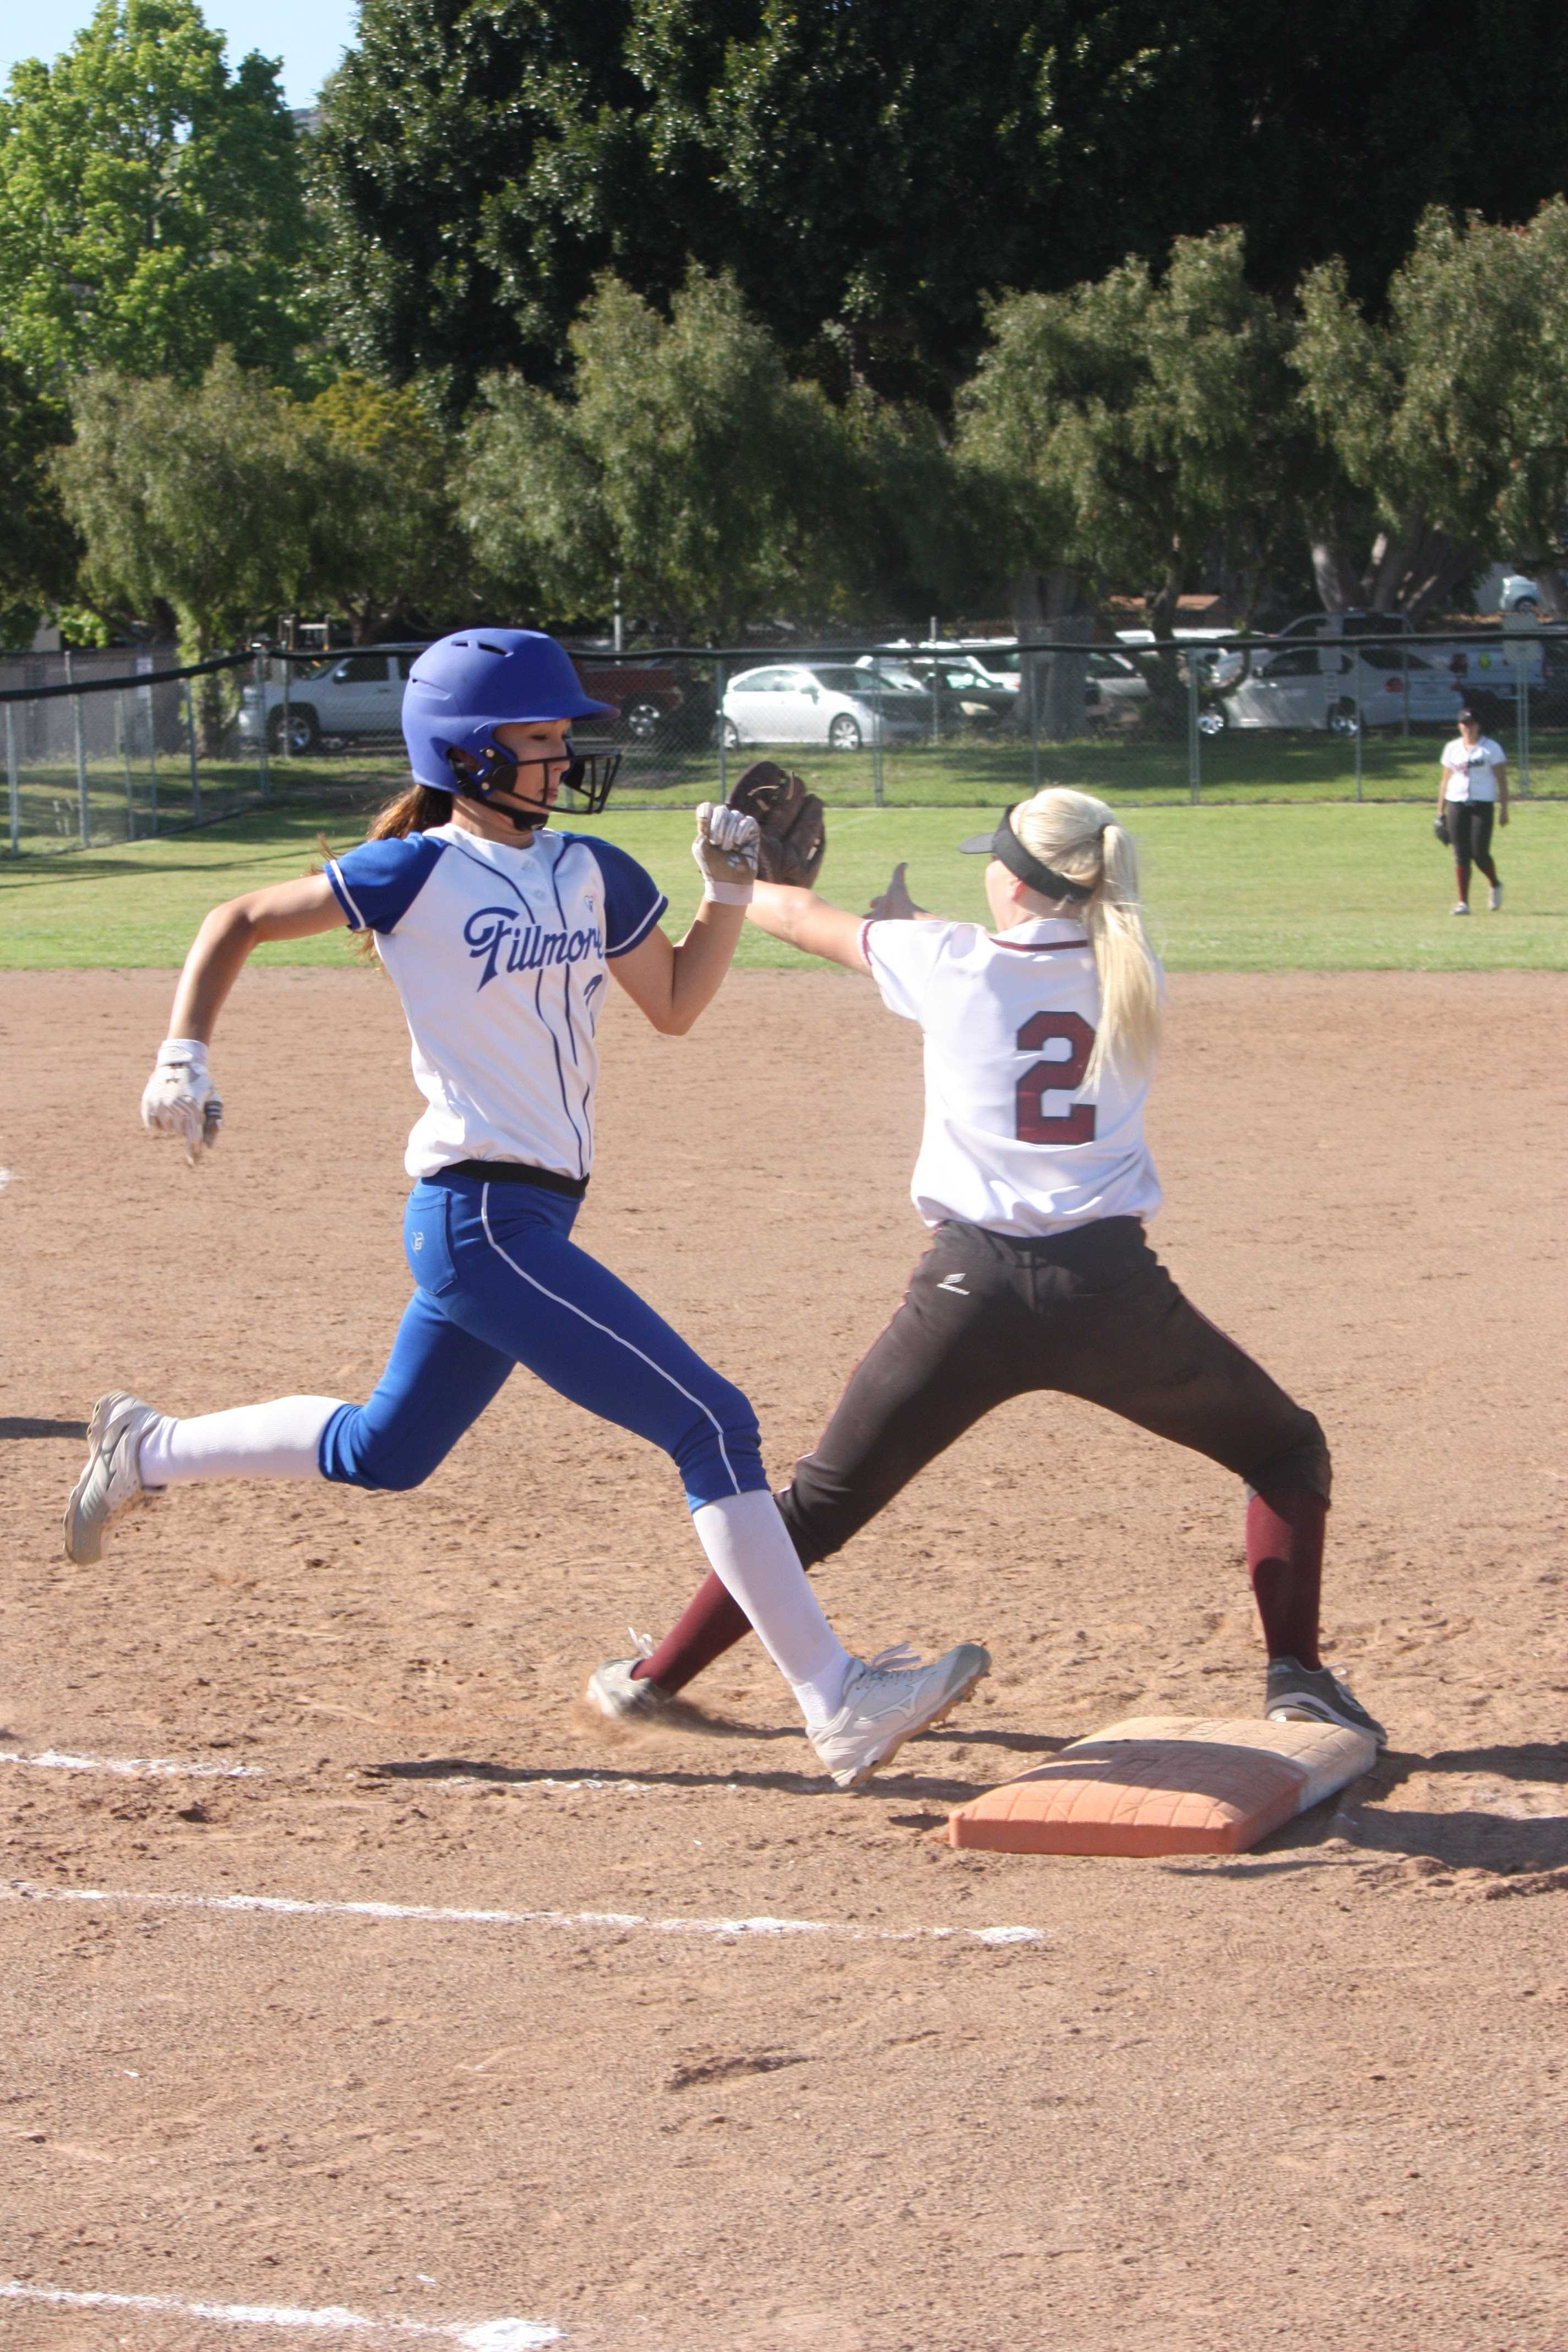 Sophomore Jamie Dietz (2) catches the ball at first base, tagging out Fillmore varsity batter. Credit: Gabrialla Cockerell/ The Foothill Dragon Press